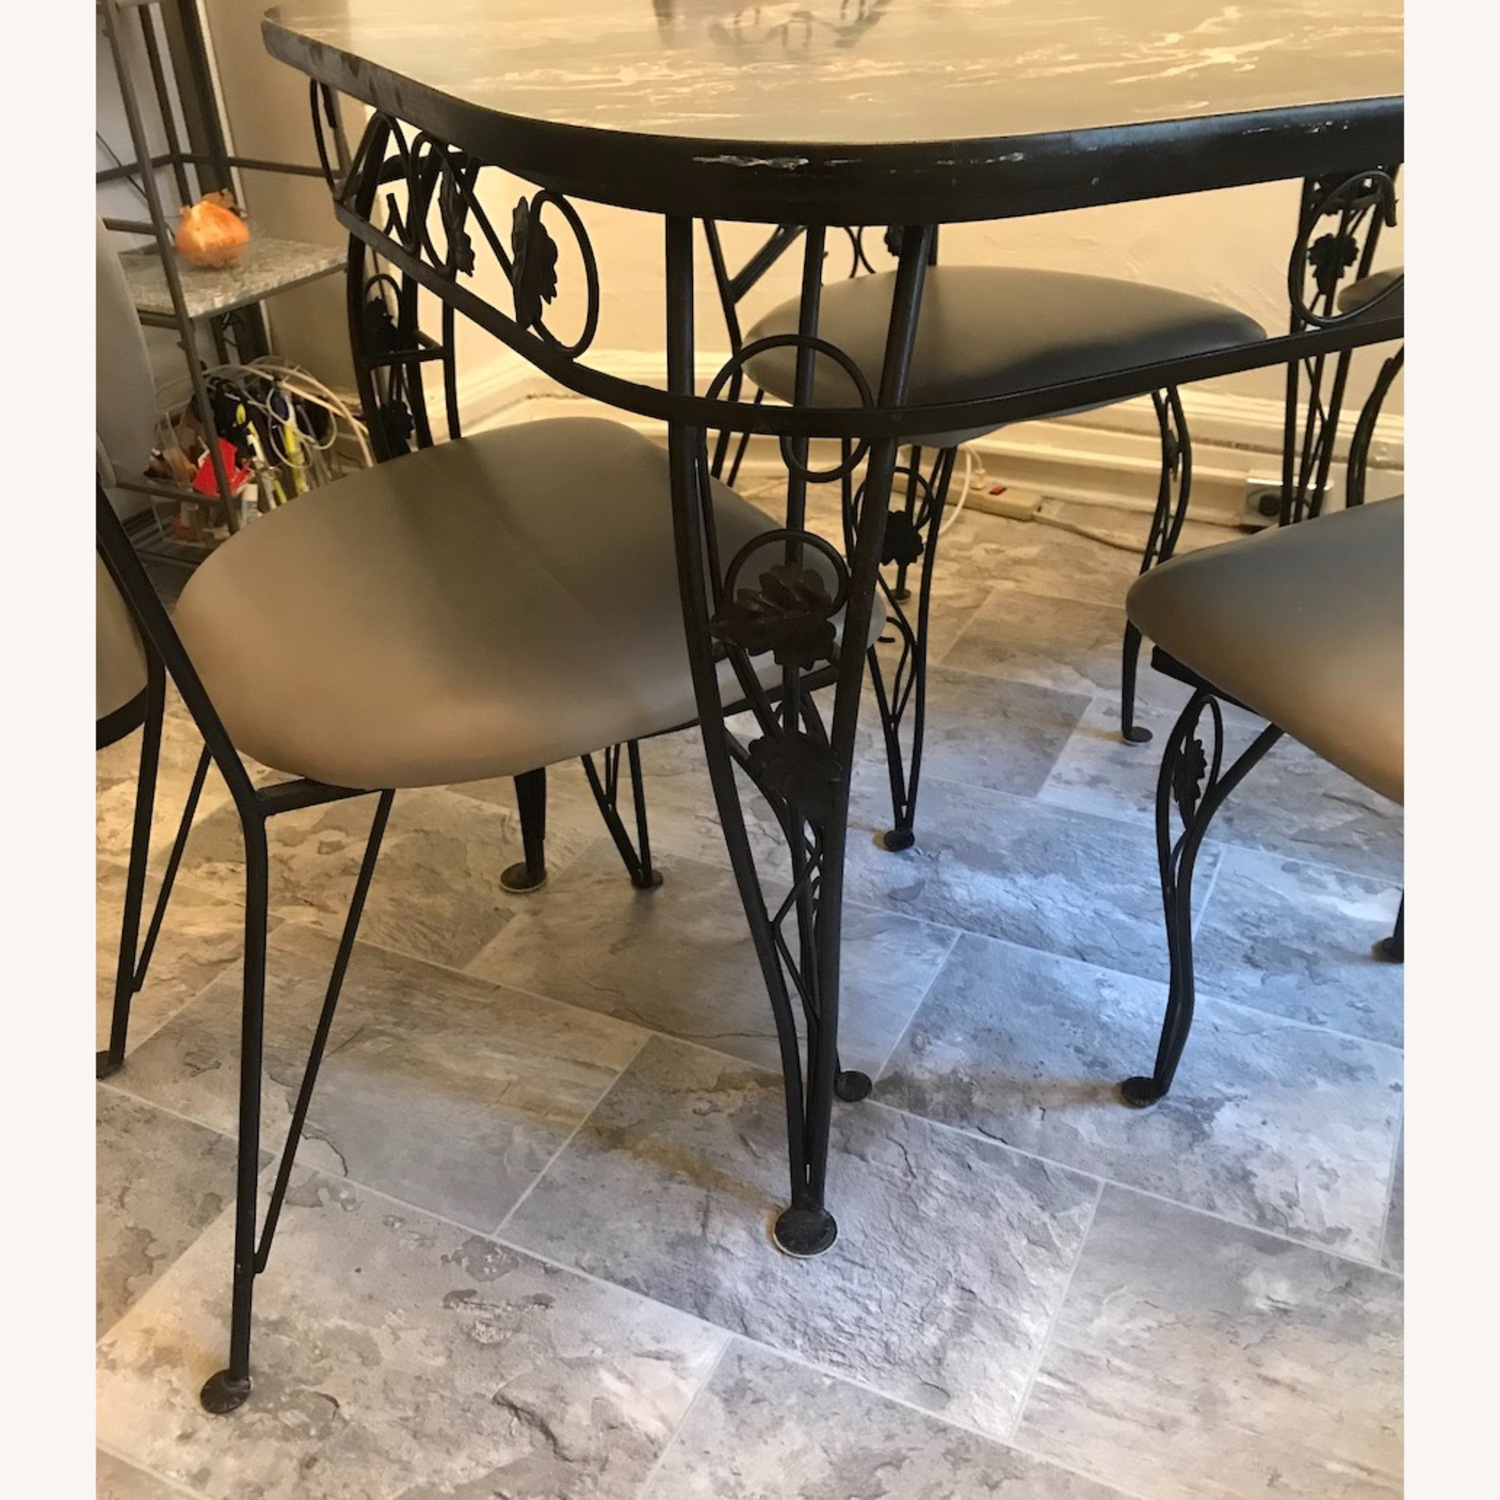 Vintage Wrought Iron / Formica Kitchen Table - image-1